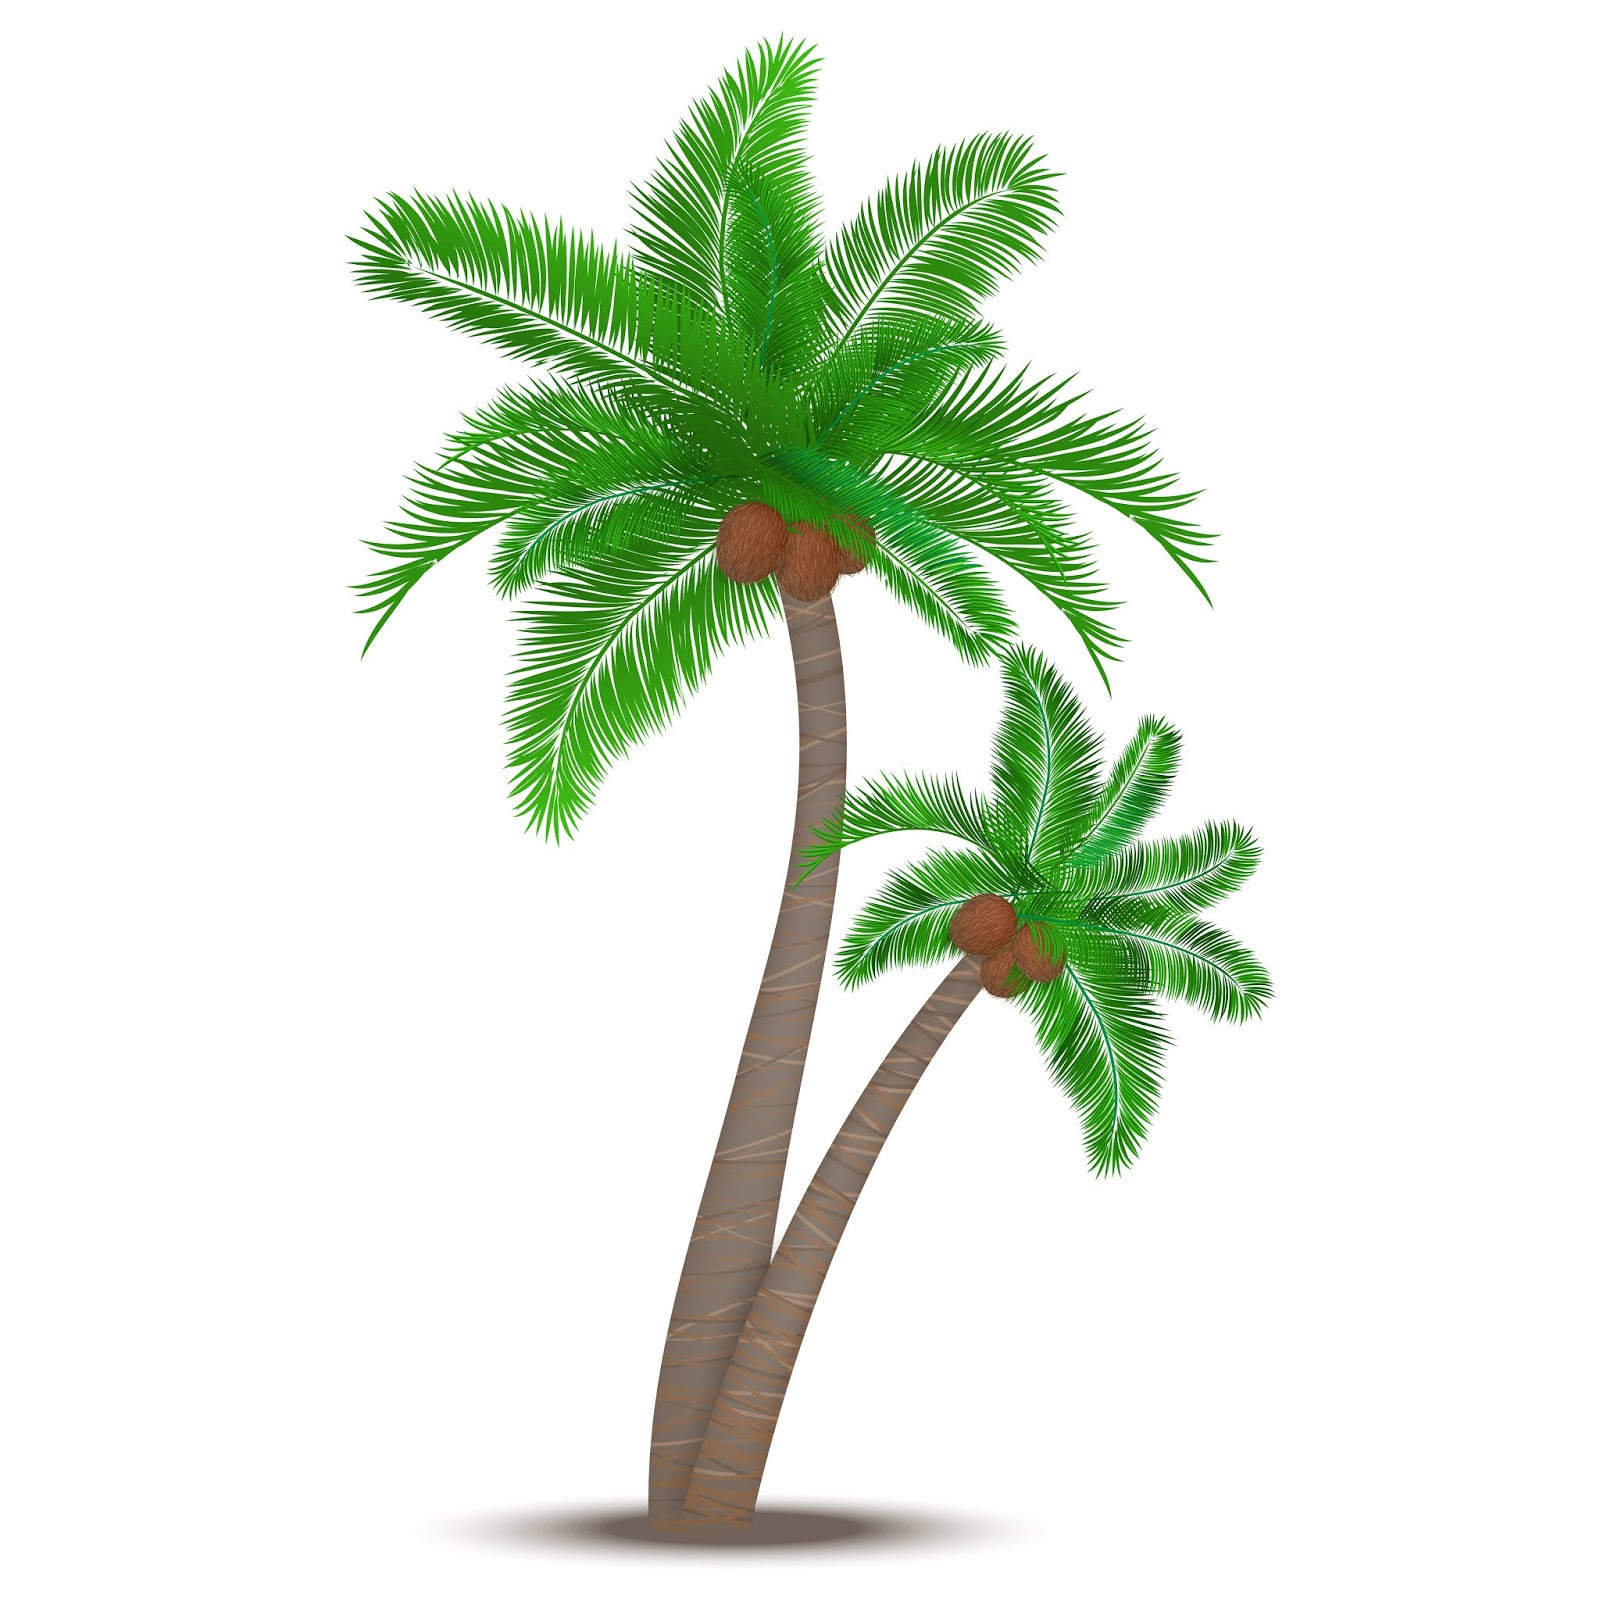 Tropical Palm Tree With Coconuts Symbol Free Download Vector CDR, AI, EPS and PNG Formats